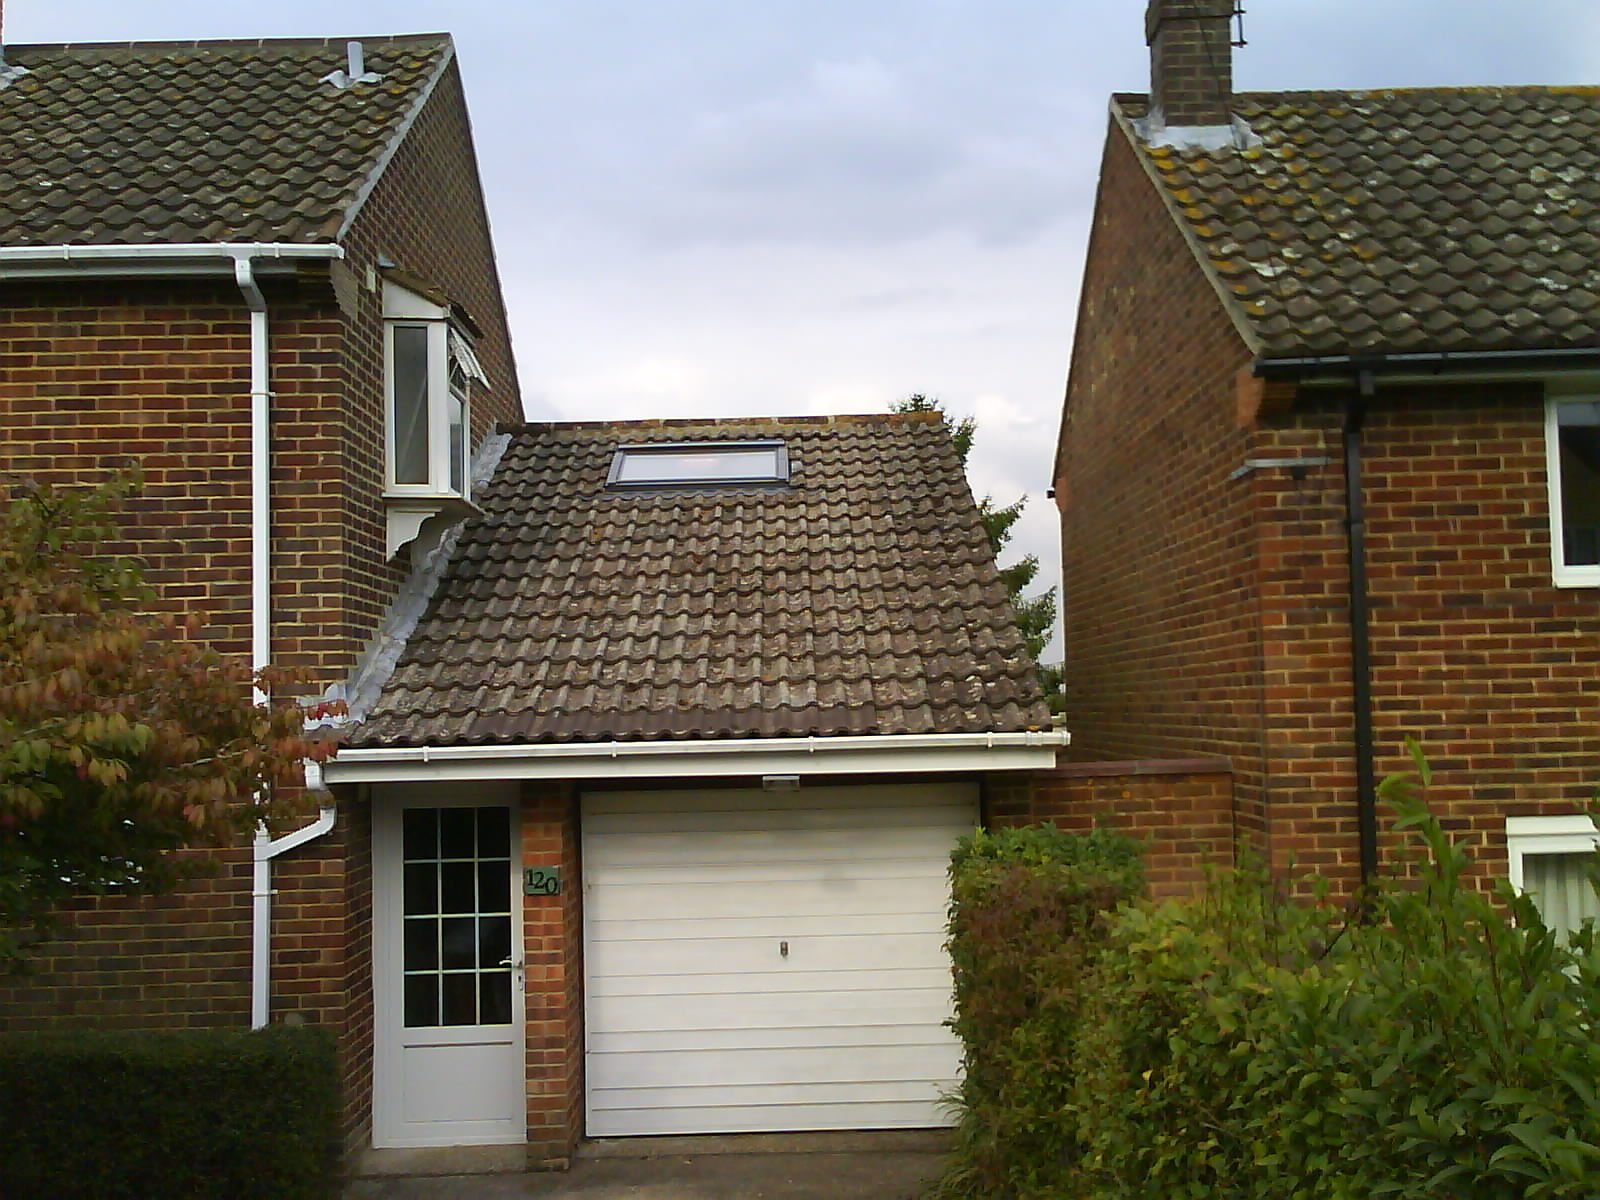 tiled roof above garage